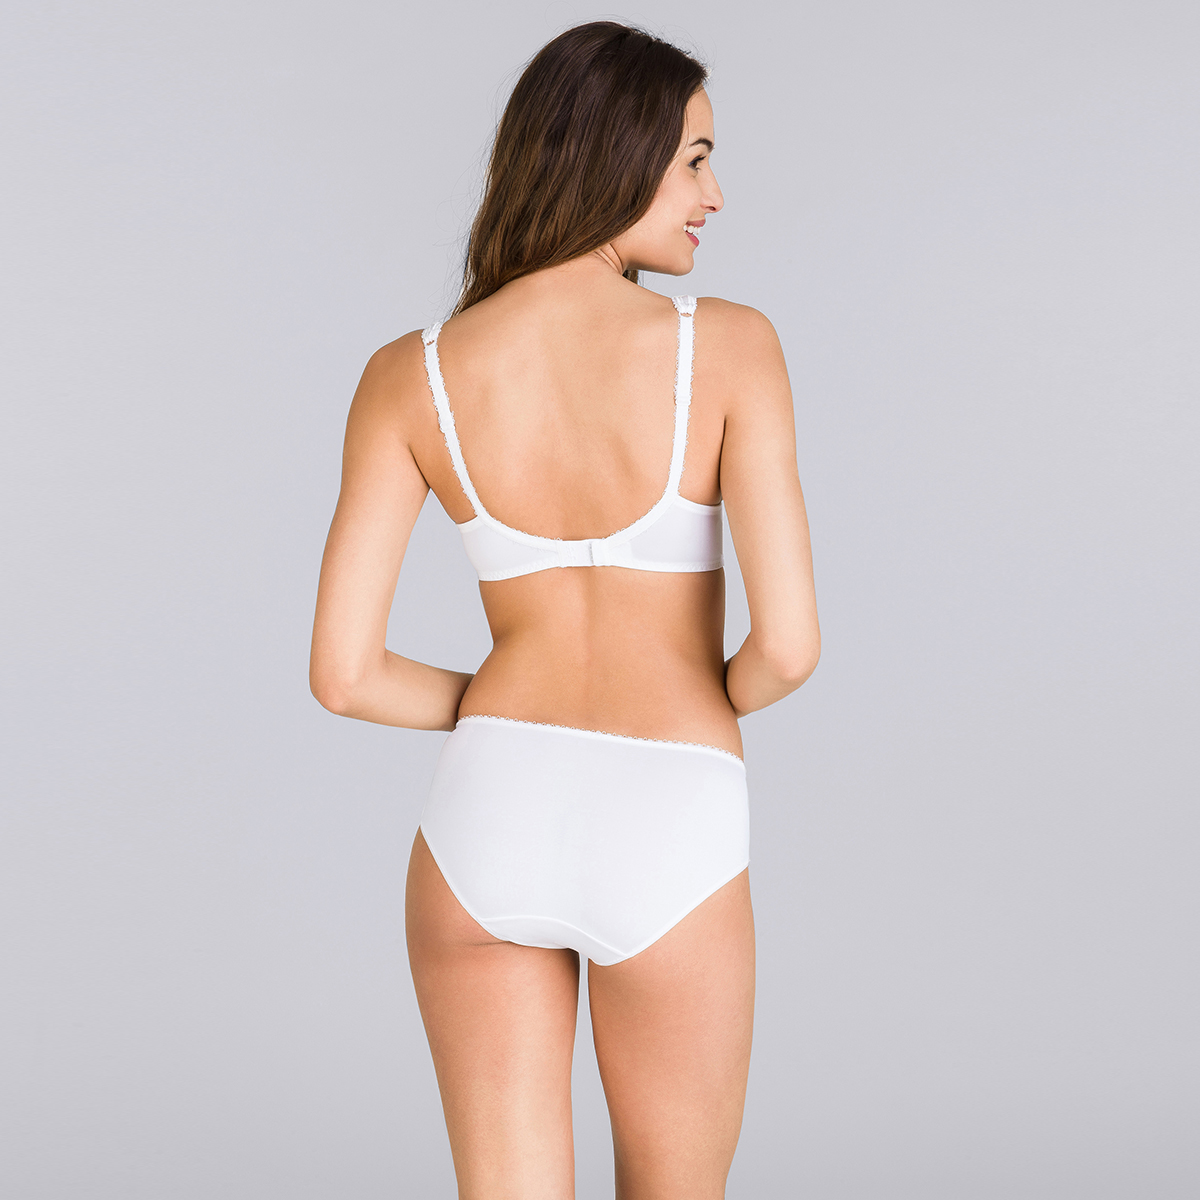 Soutien-gorge spacer blanc Flower Elegance, , PLAYTEX